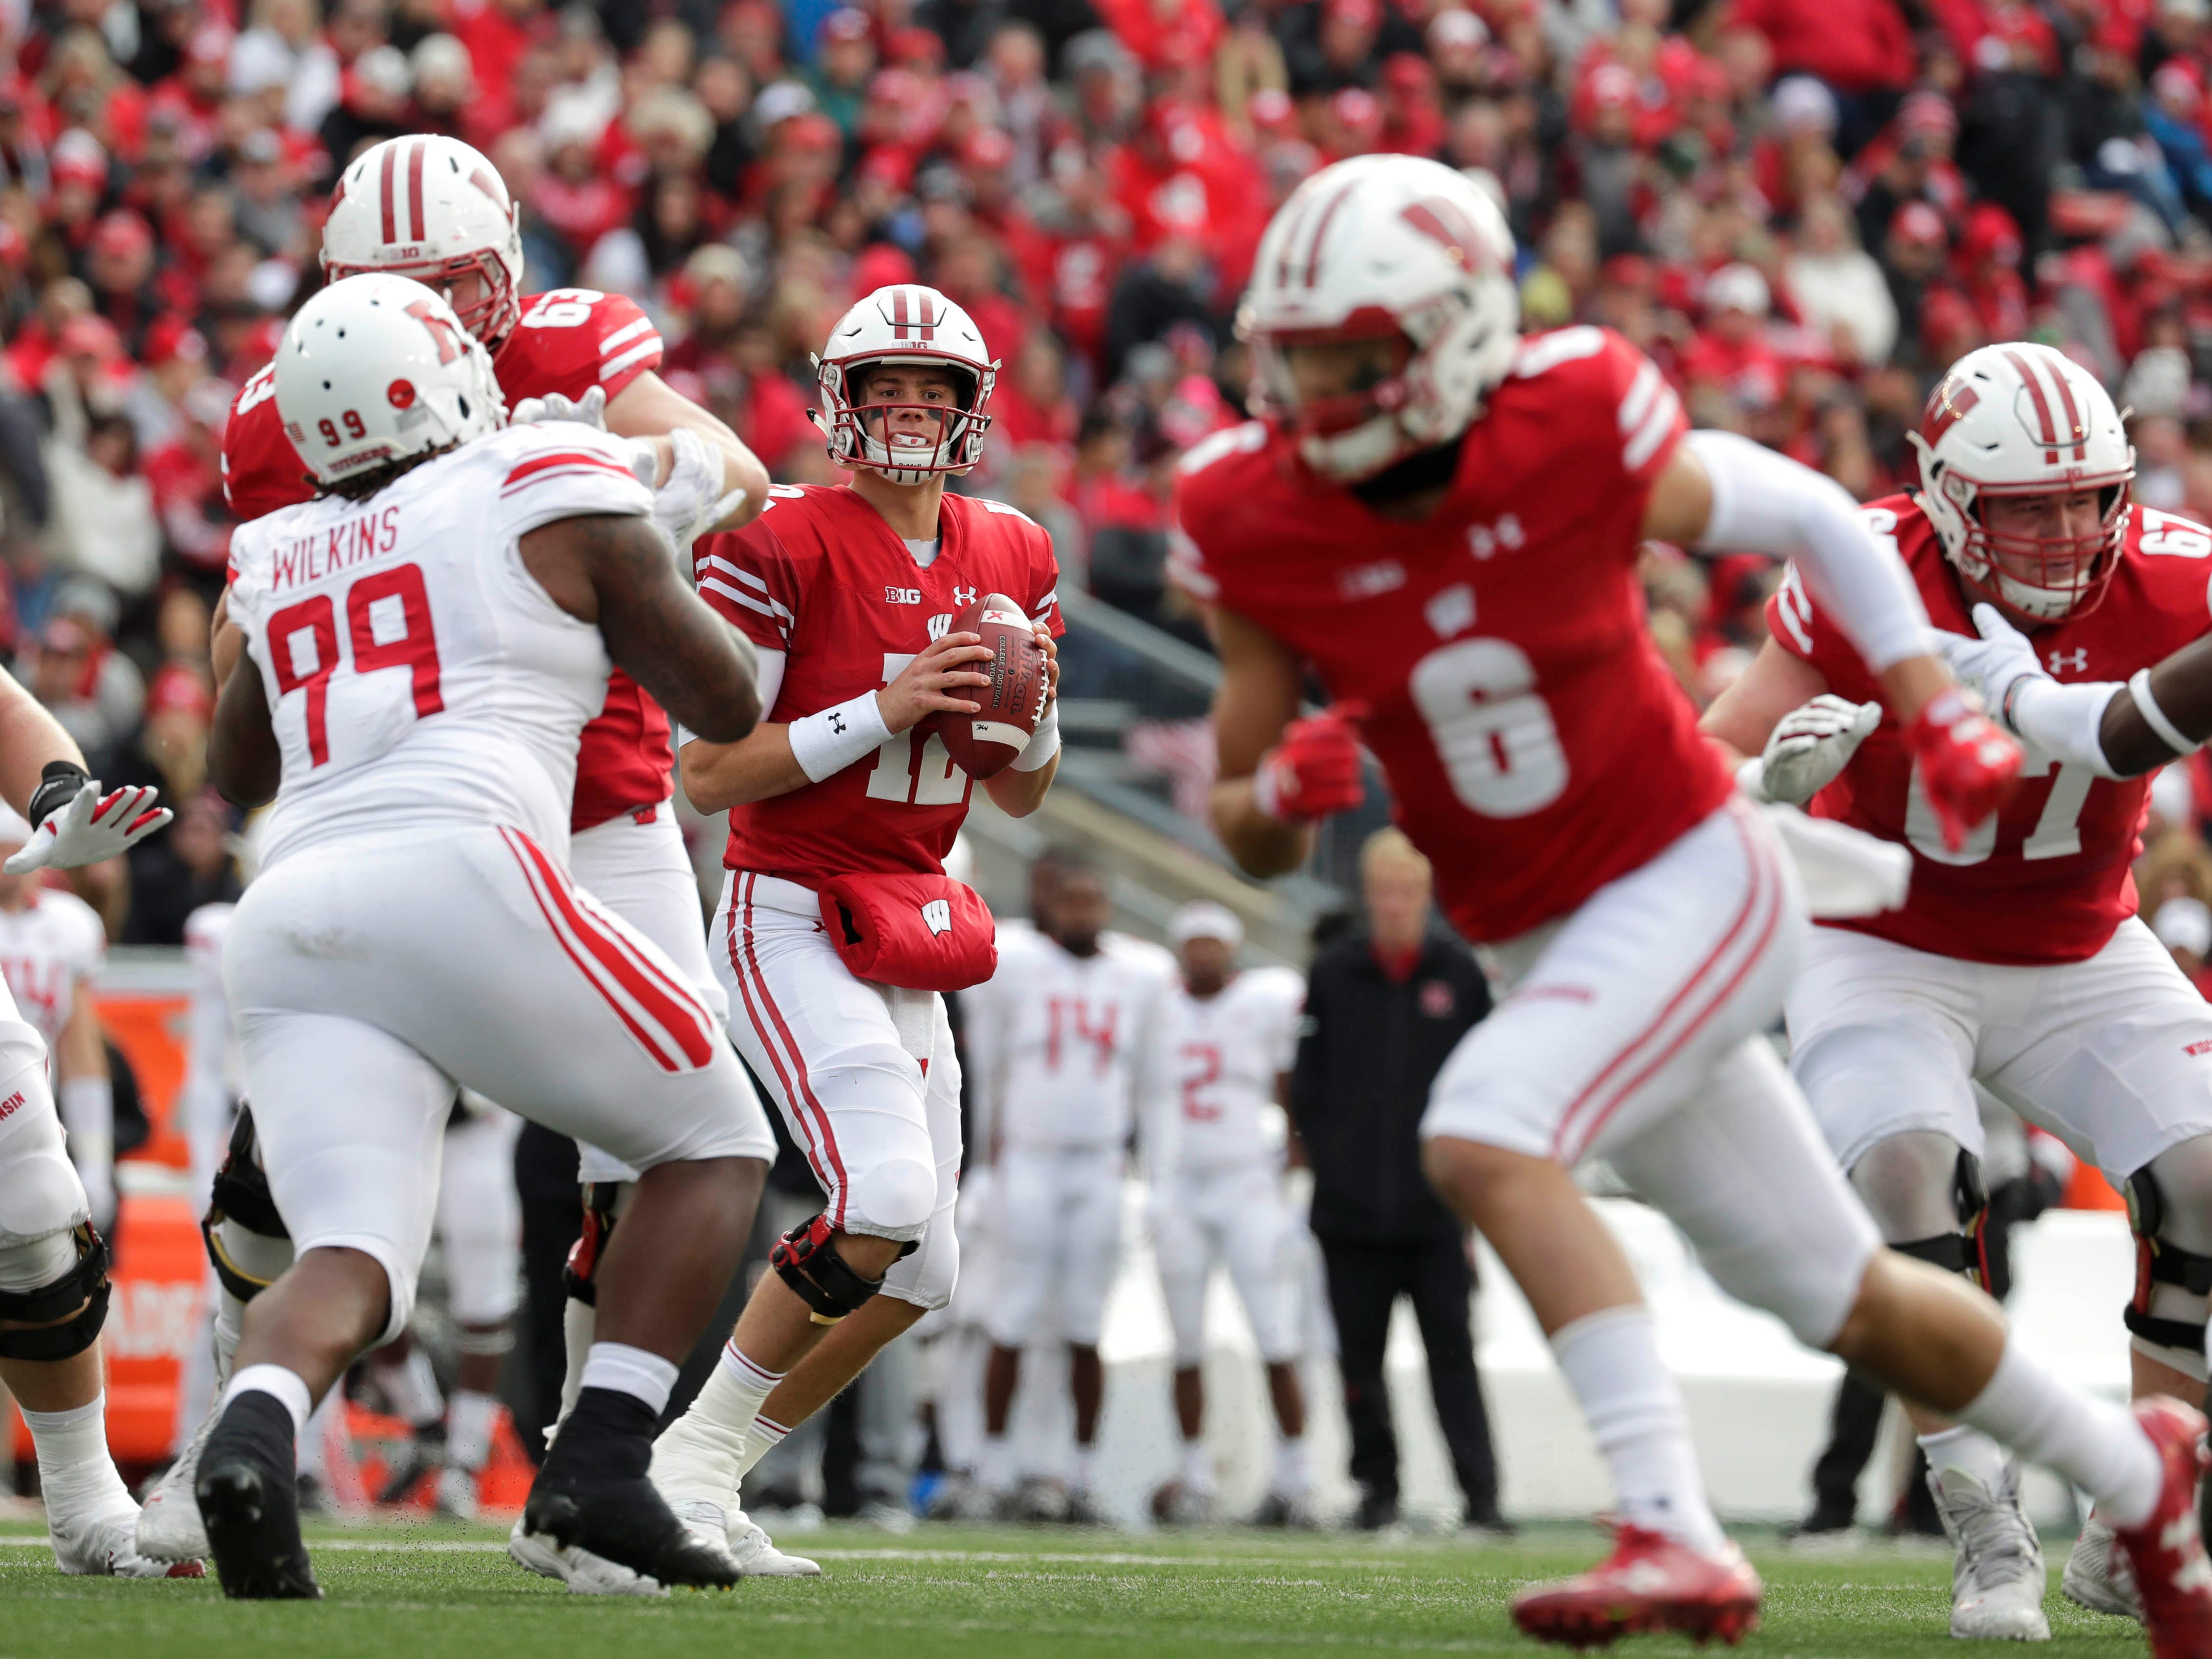 Badgers quarterback Alex Hornibrook looks for an open receiver in the red zone during the first half against Rutgers on Saturday.